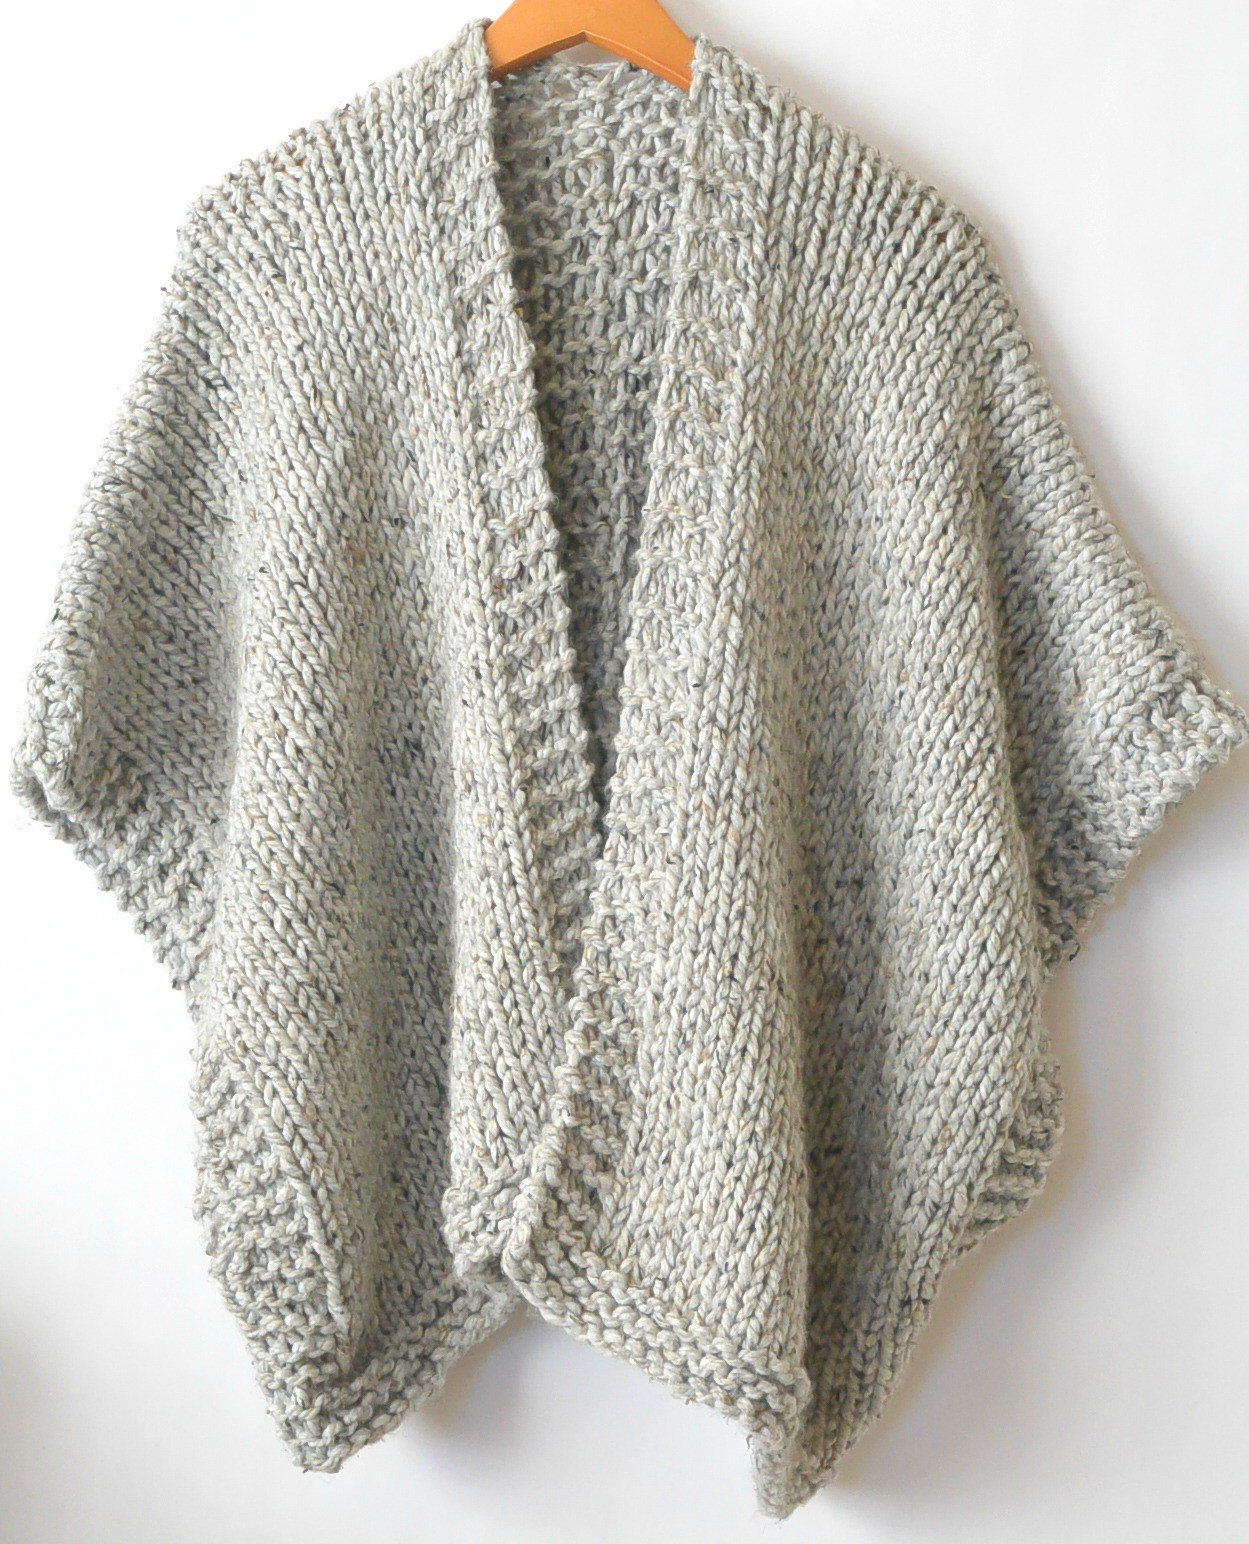 Knitting Patterns Unique Telluride Easy Knit Kimono Pattern – Mama In A Stitch Of Contemporary 47 Pictures Knitting Patterns